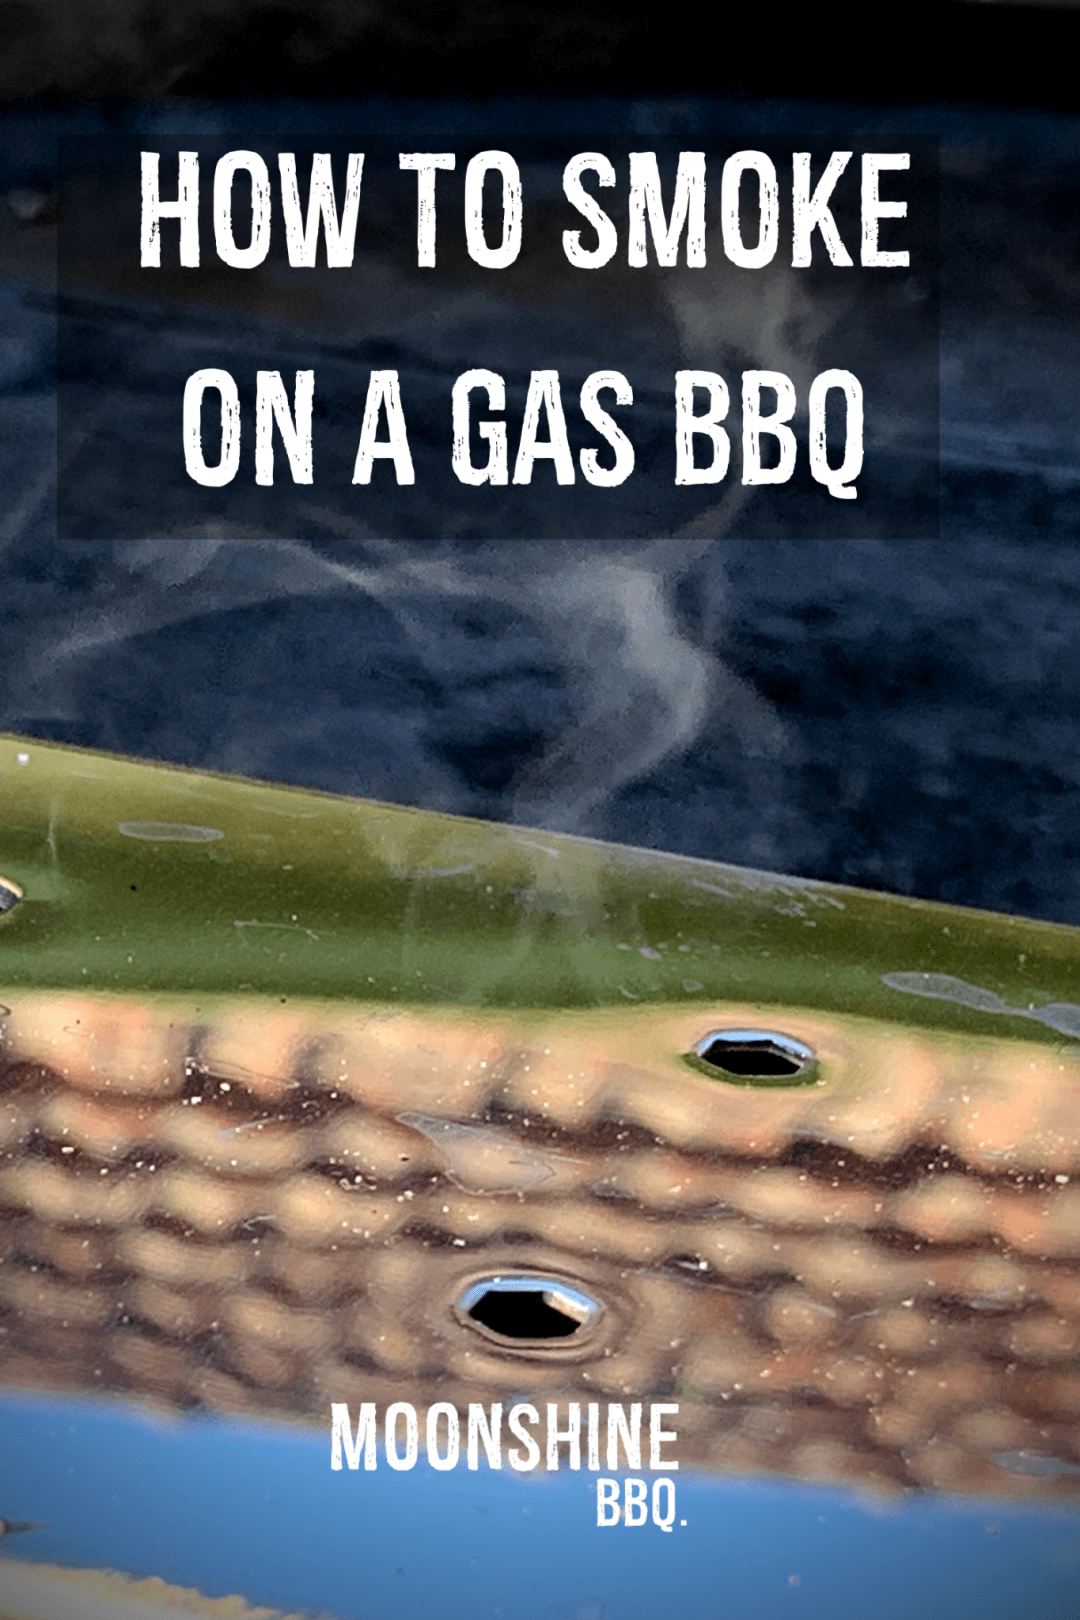 How to Smoke on a Gas BBQ